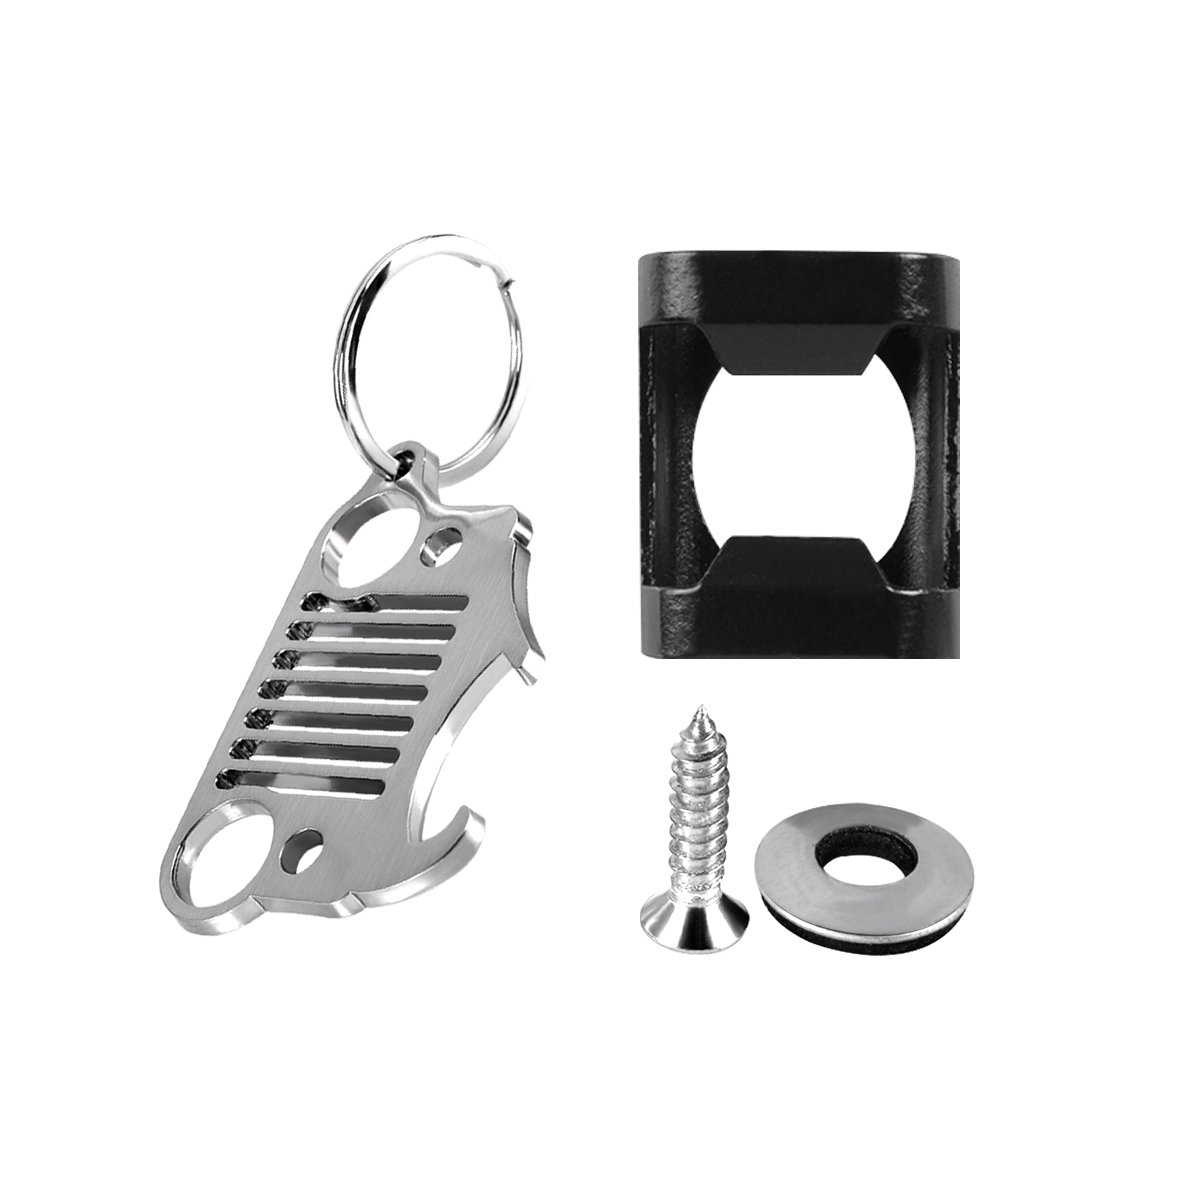 AutoEC Bottle Opener for Rear License Plate fits Jeep Wrangler JK TJ Models with Key Chain Bottle Opener for Man and Women Wrangler License Plate Mounted Bottle Opener Accessory